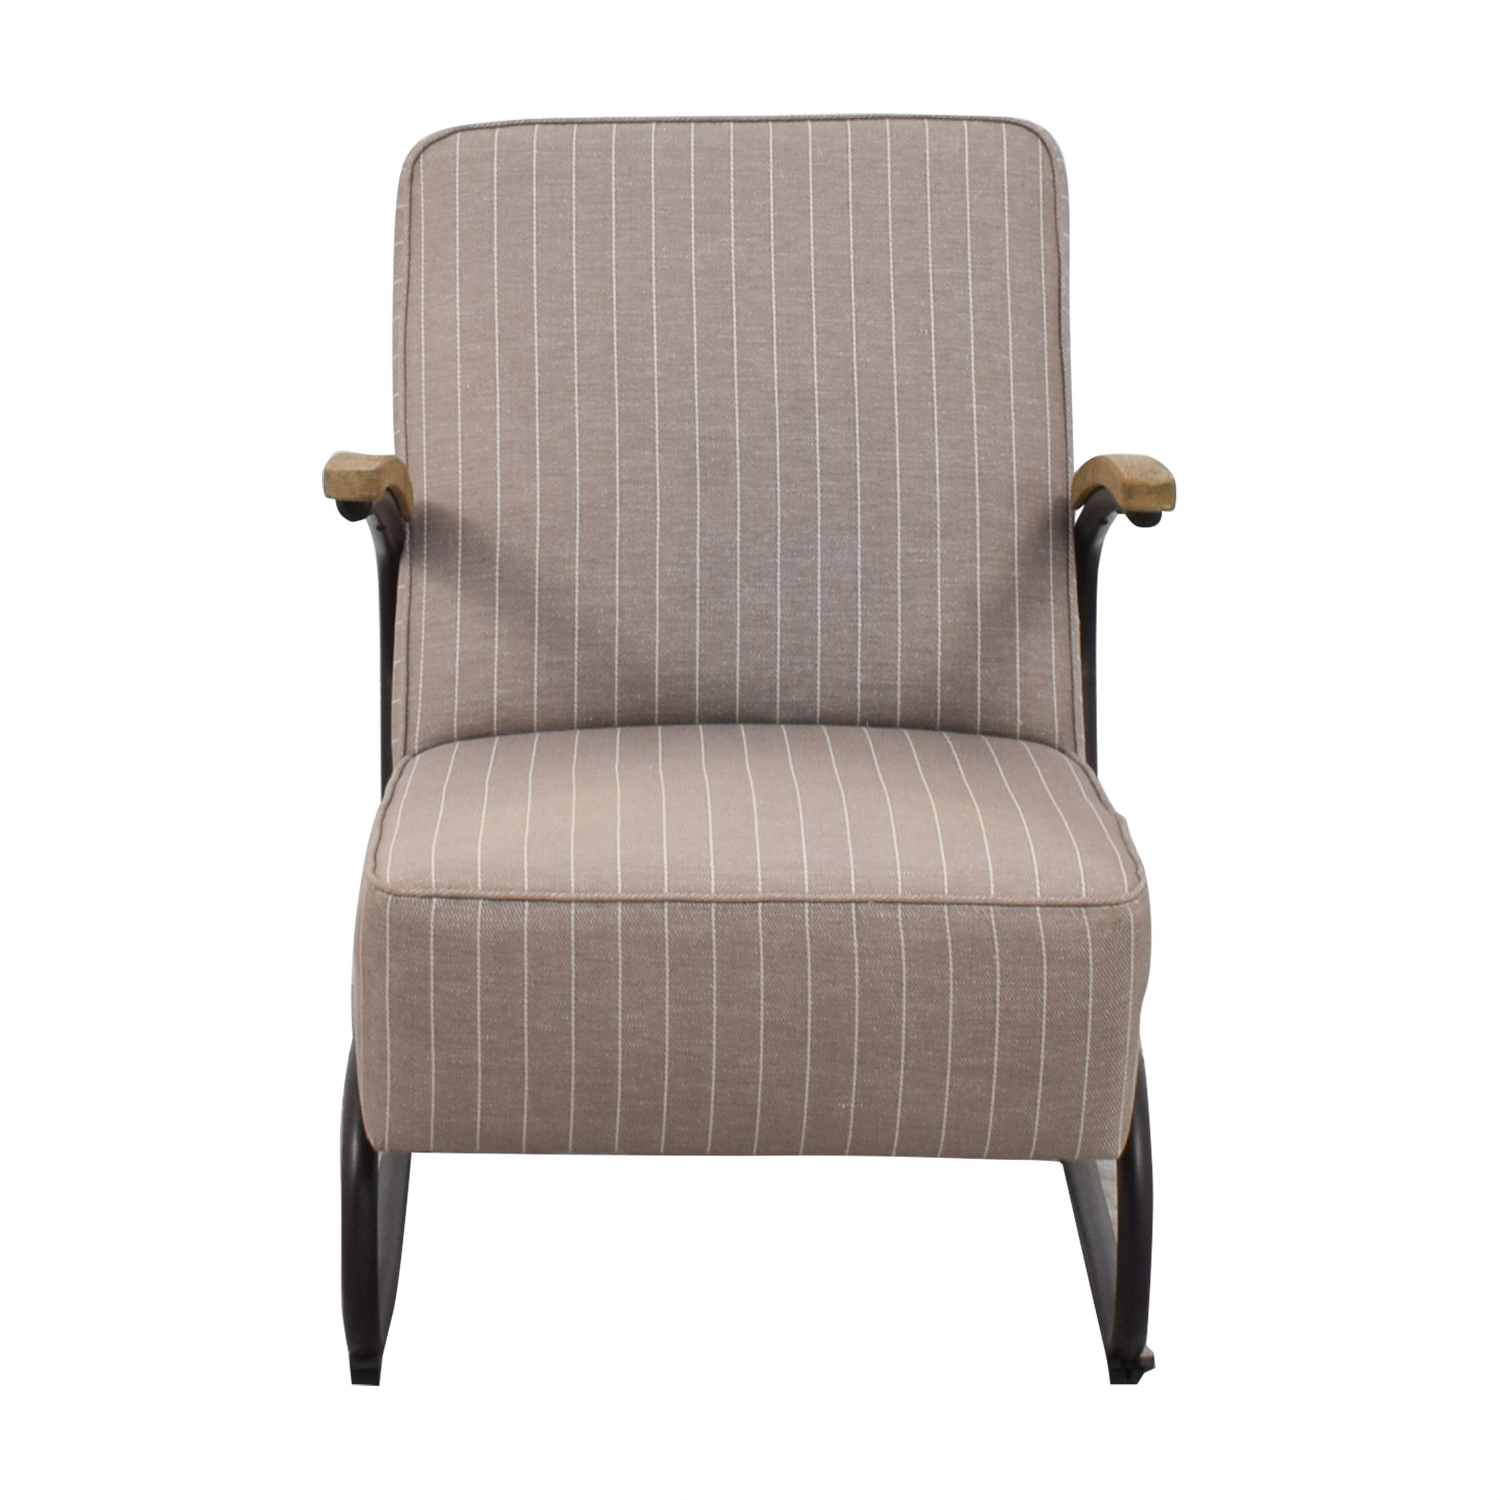 shop Beige and White Pinstripe Industrial Modern Arm Chair